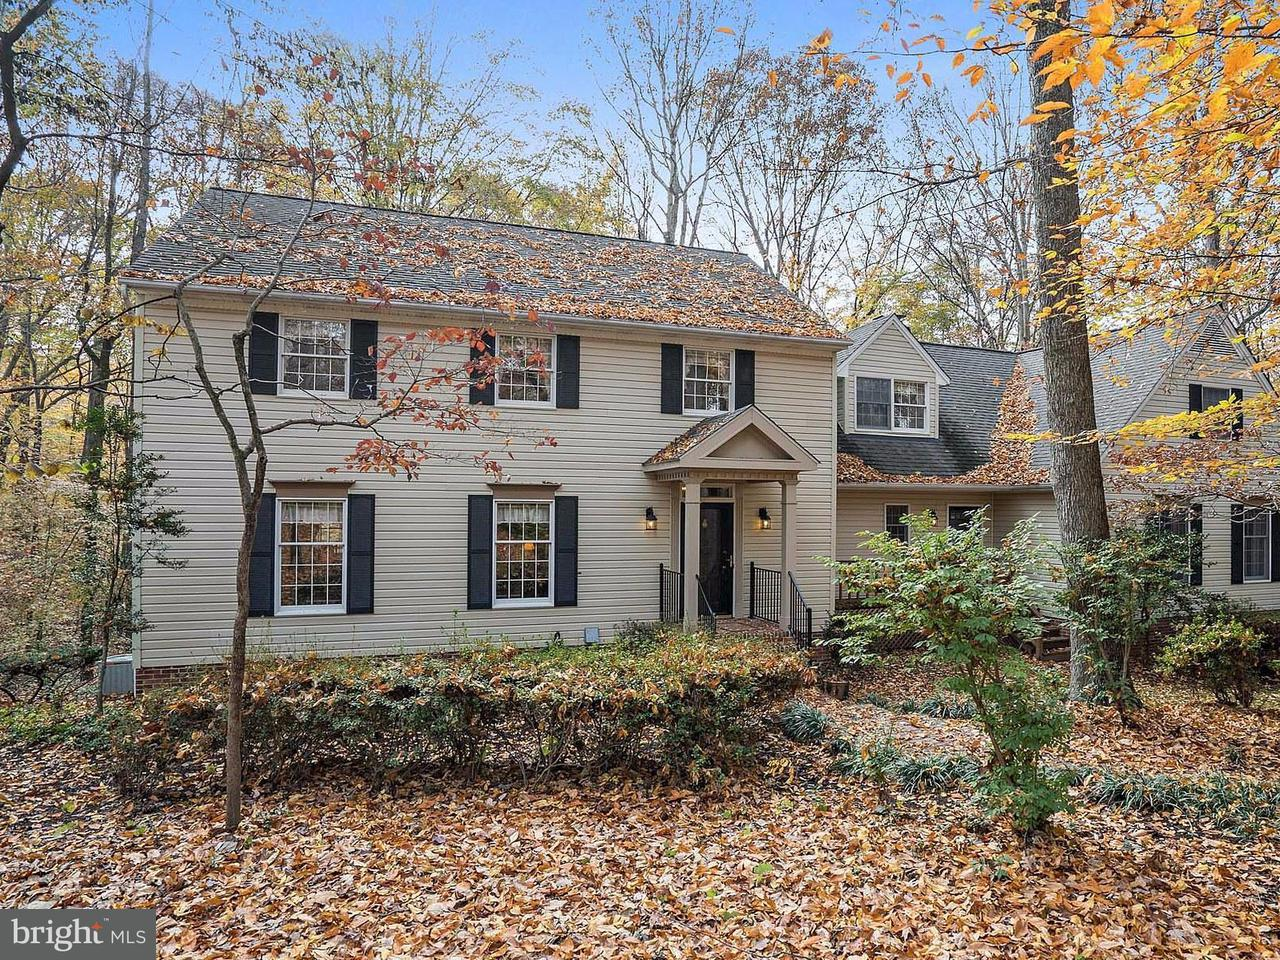 Single Family Home for Sale at 8091 Counselor Road 8091 Counselor Road Manassas, Virginia 20112 United States